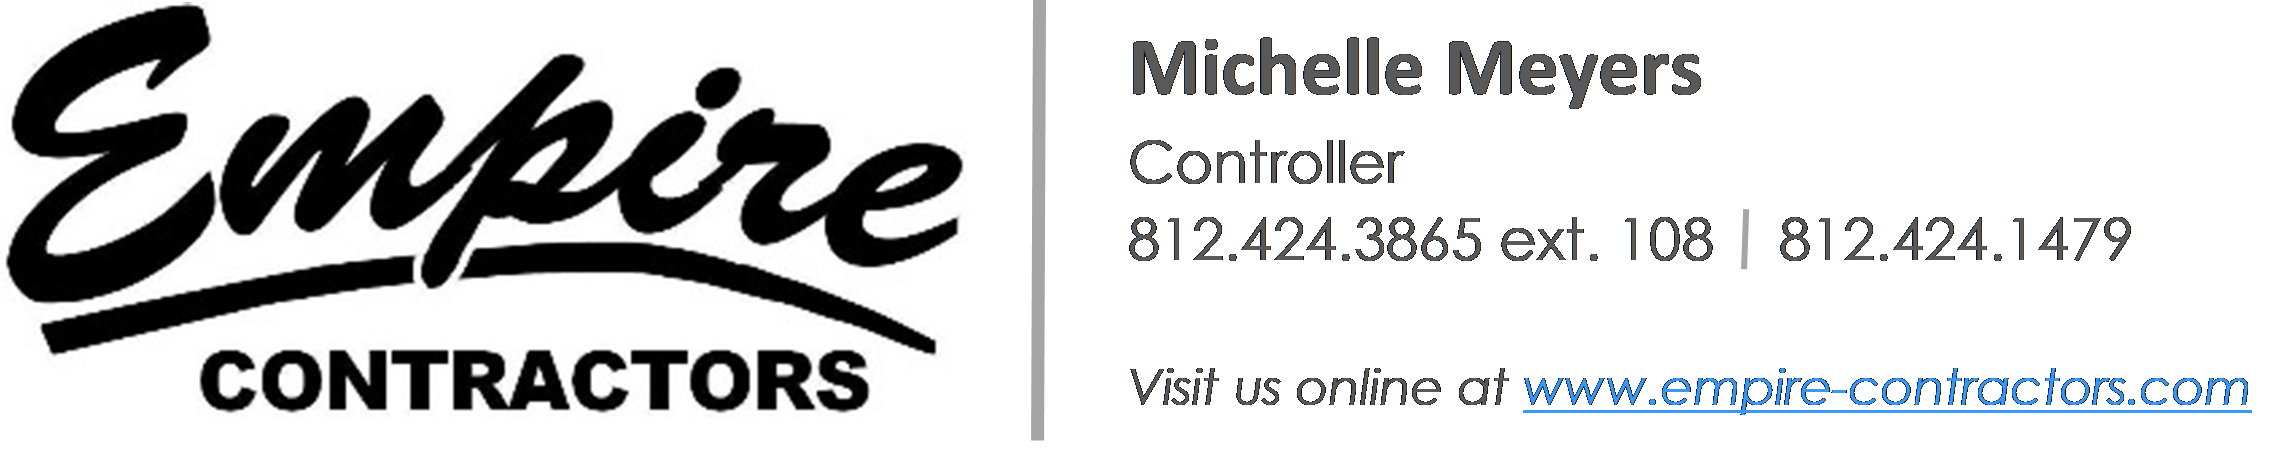 Michell Email Signature 1.png